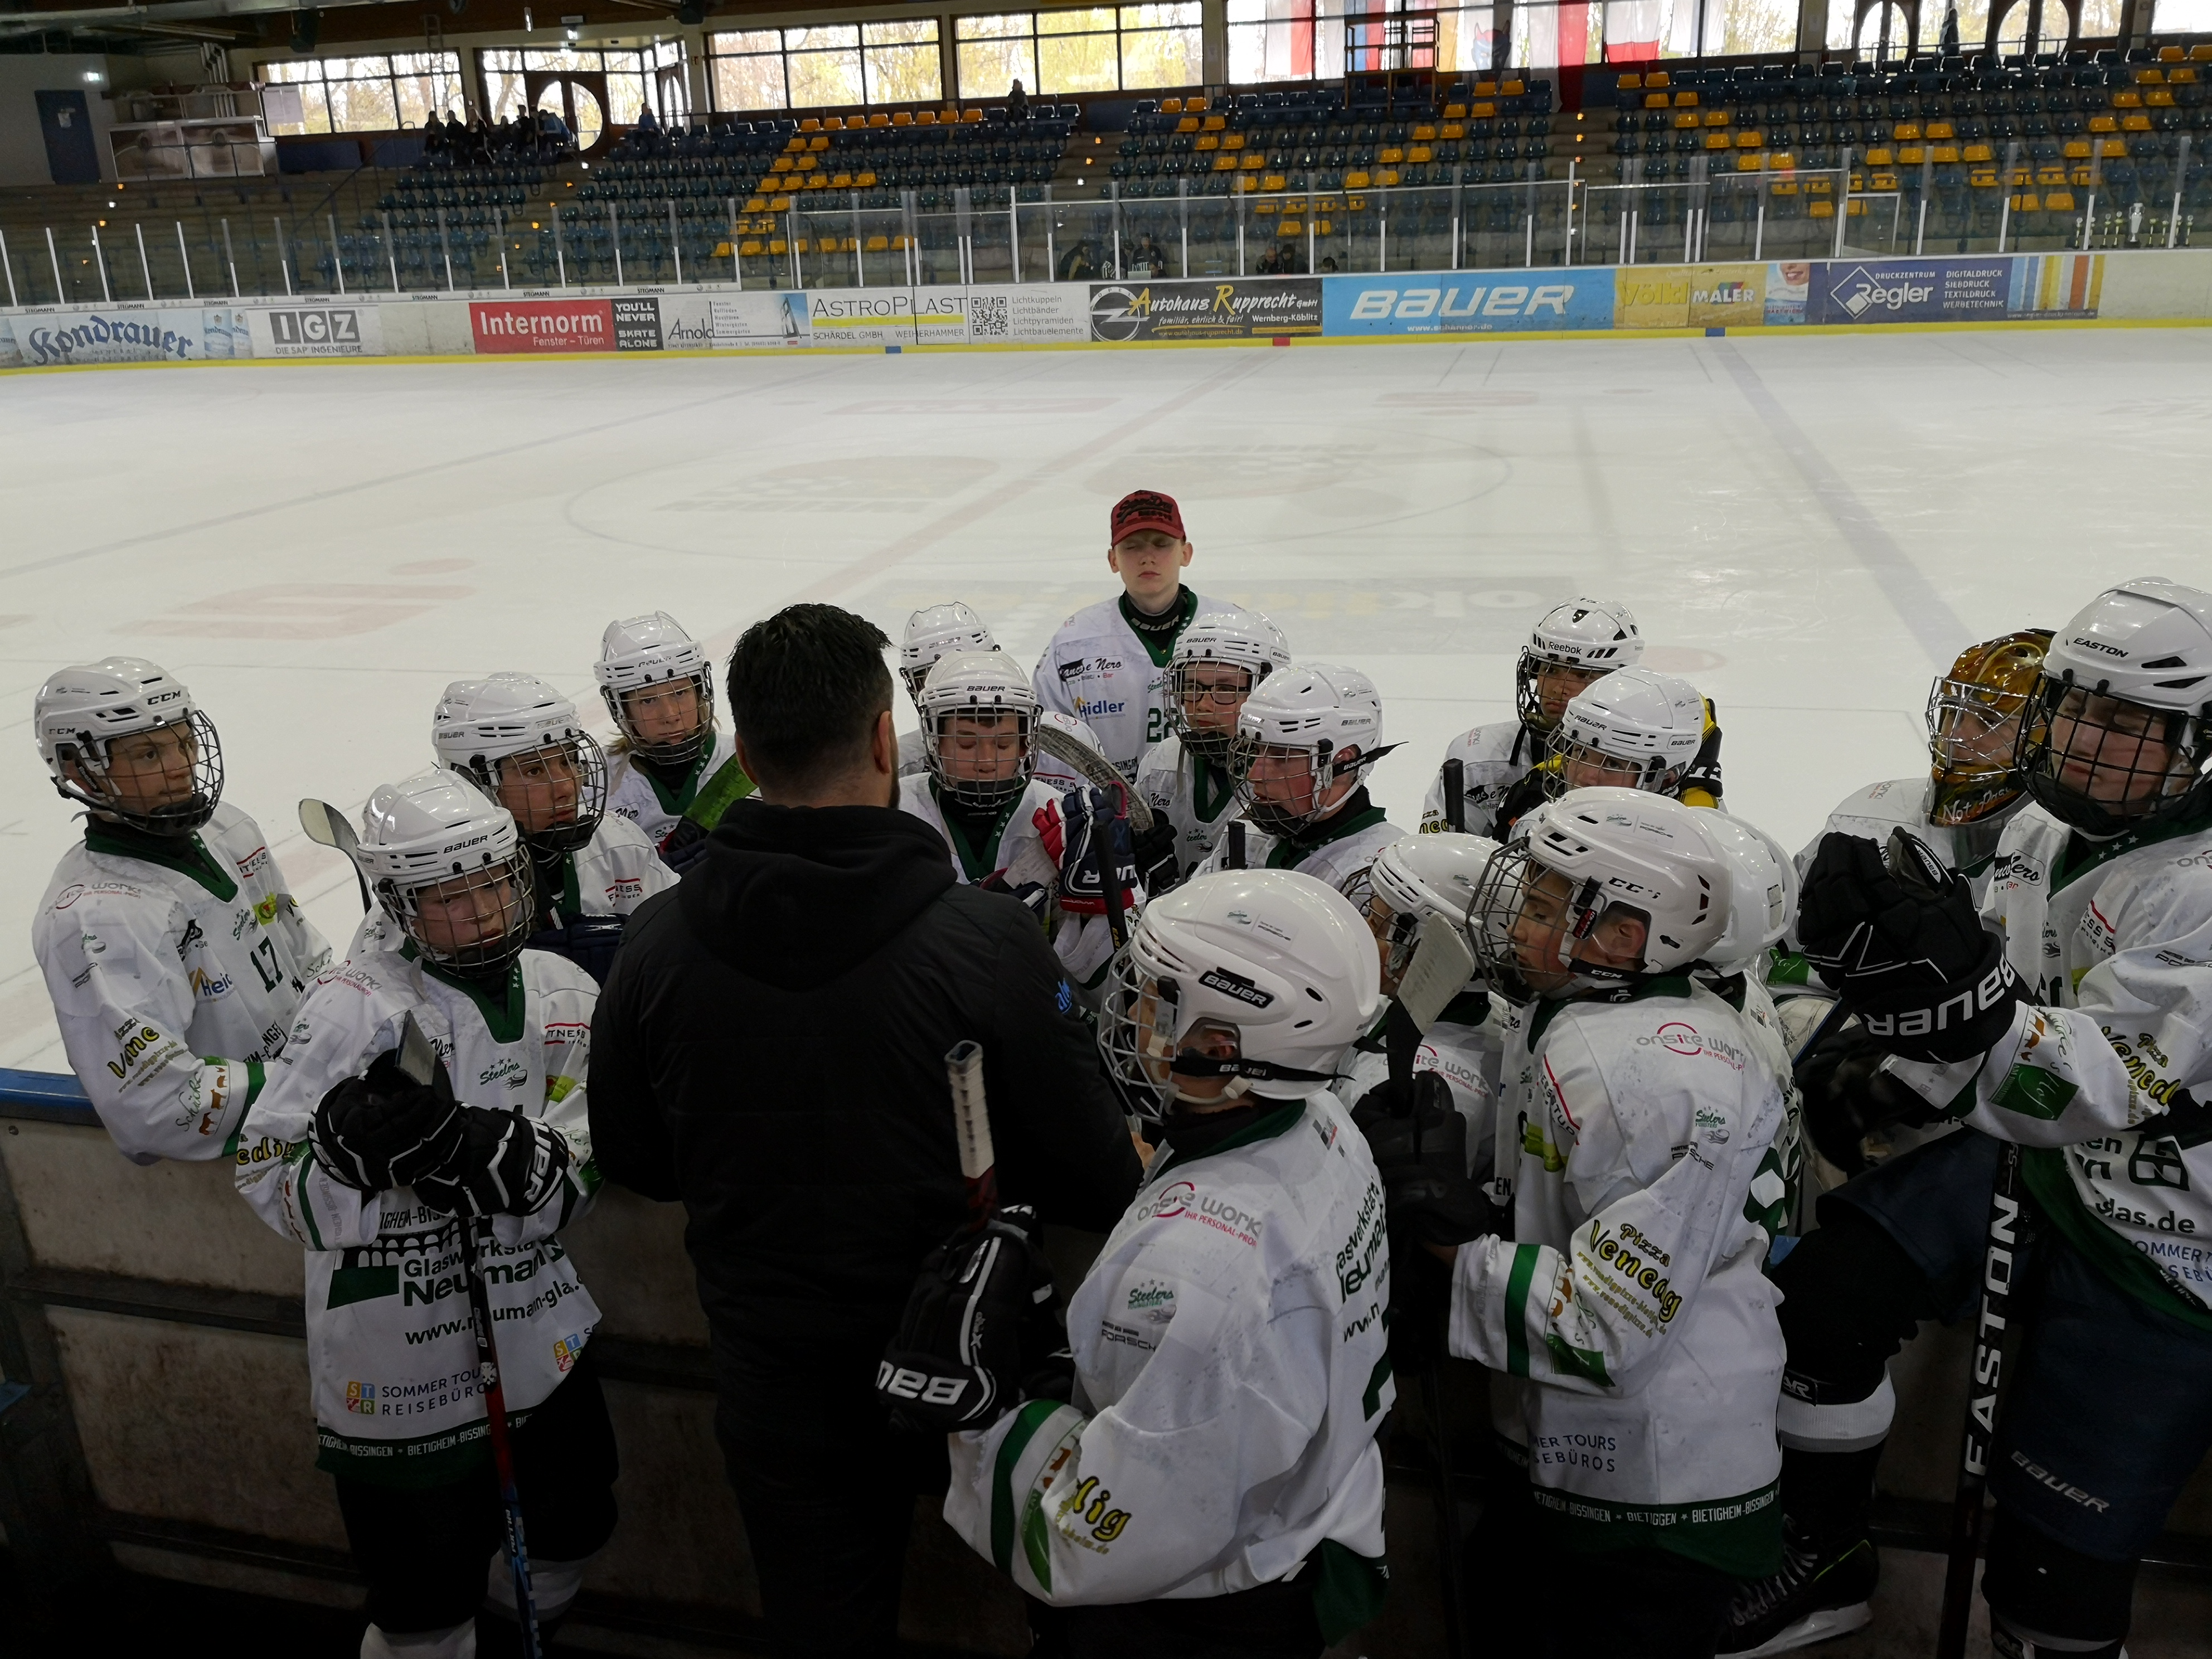 U15 beim Rumble on Ice in Weiden/Oberpfalz Bild